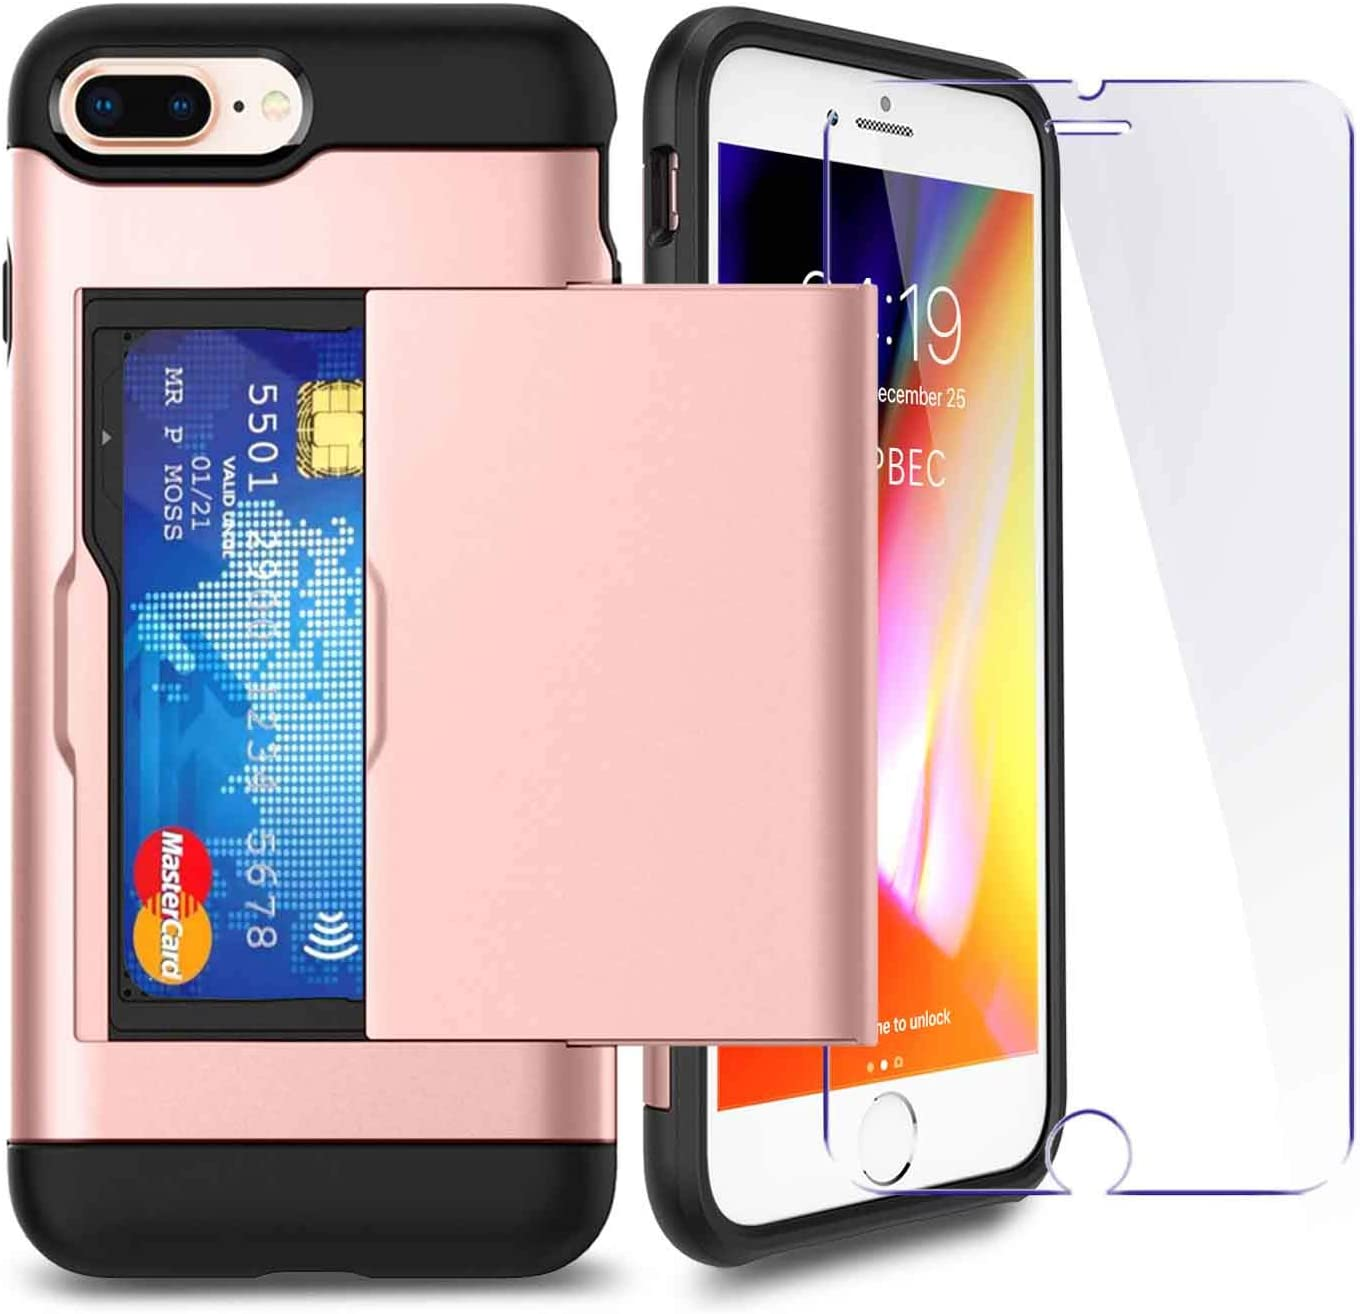 iPhone 7P/ 8P Plus Case with Card Holder and[ Screen Protector Tempered Glass x2Pack] SUPBEC i Phone 7 Plus / 8 Plus Wallet Case Cover with Shockproof Silicone TPU + Anti-Scratch Hard PC (Rose Gold)